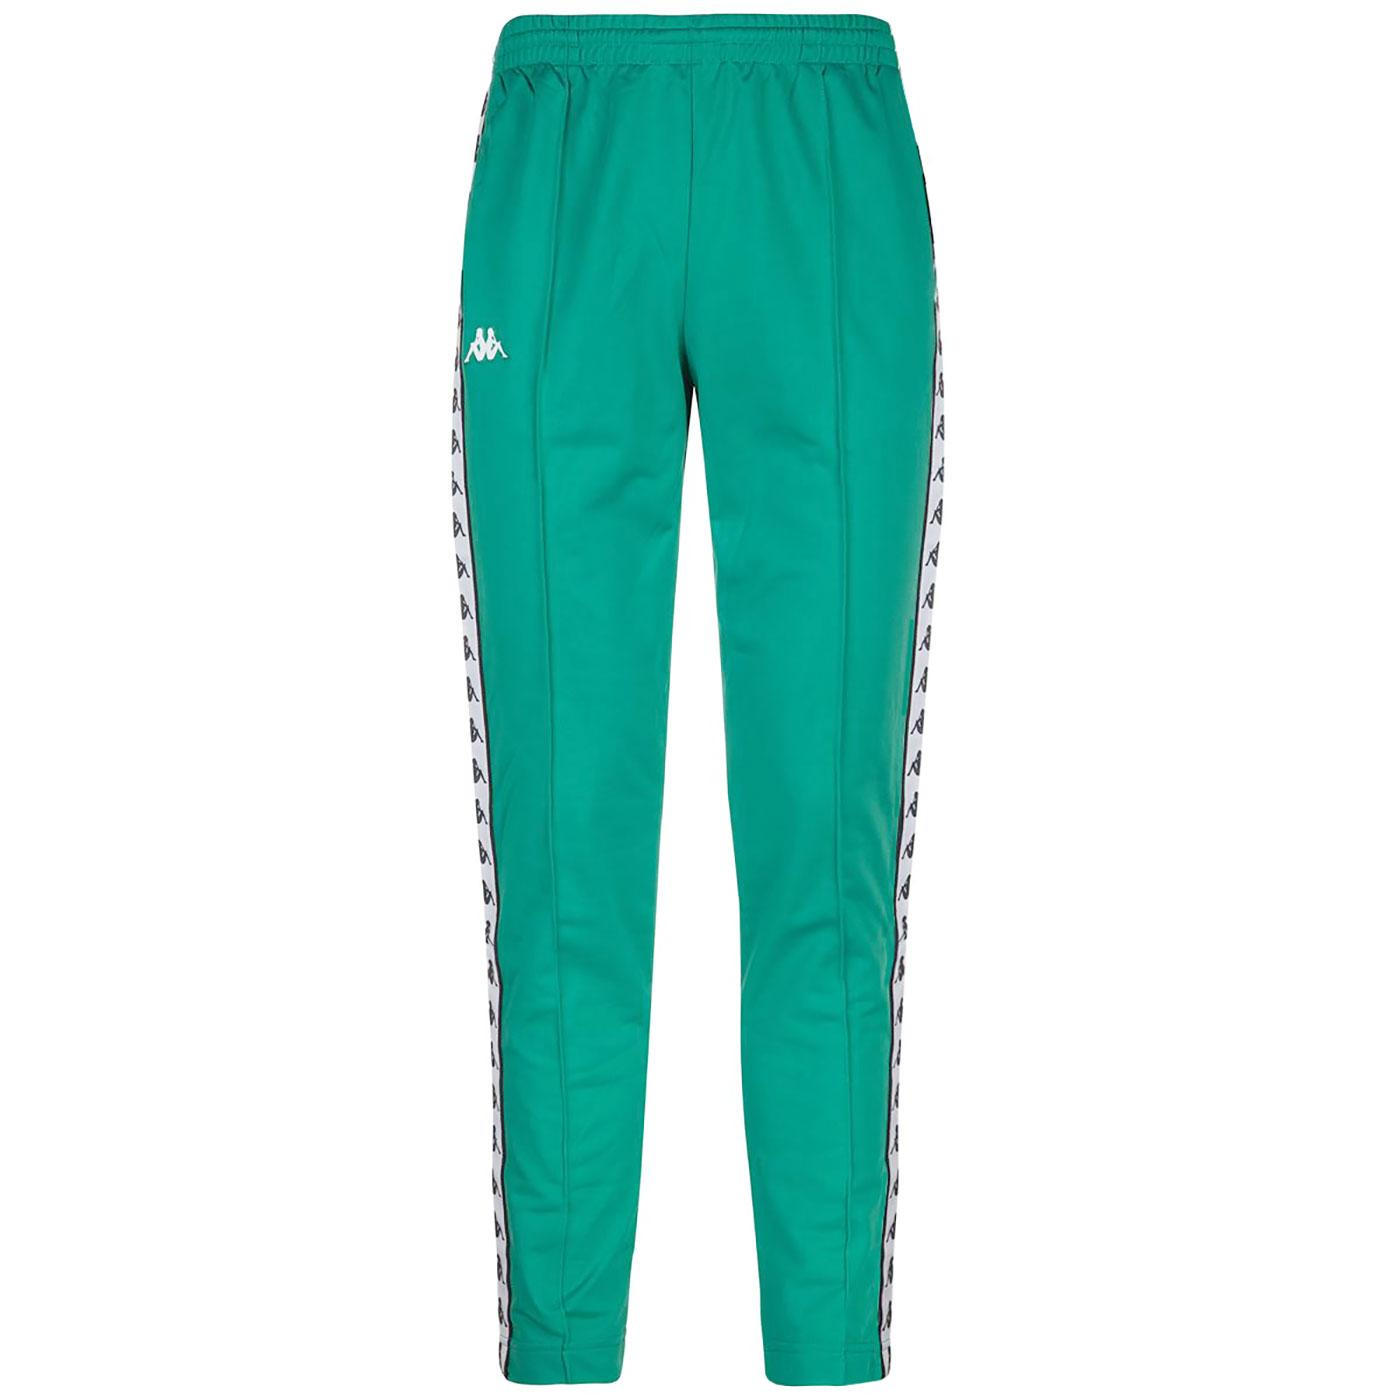 222 Banda Astoria Slim KAPPA Retro Track Pants G